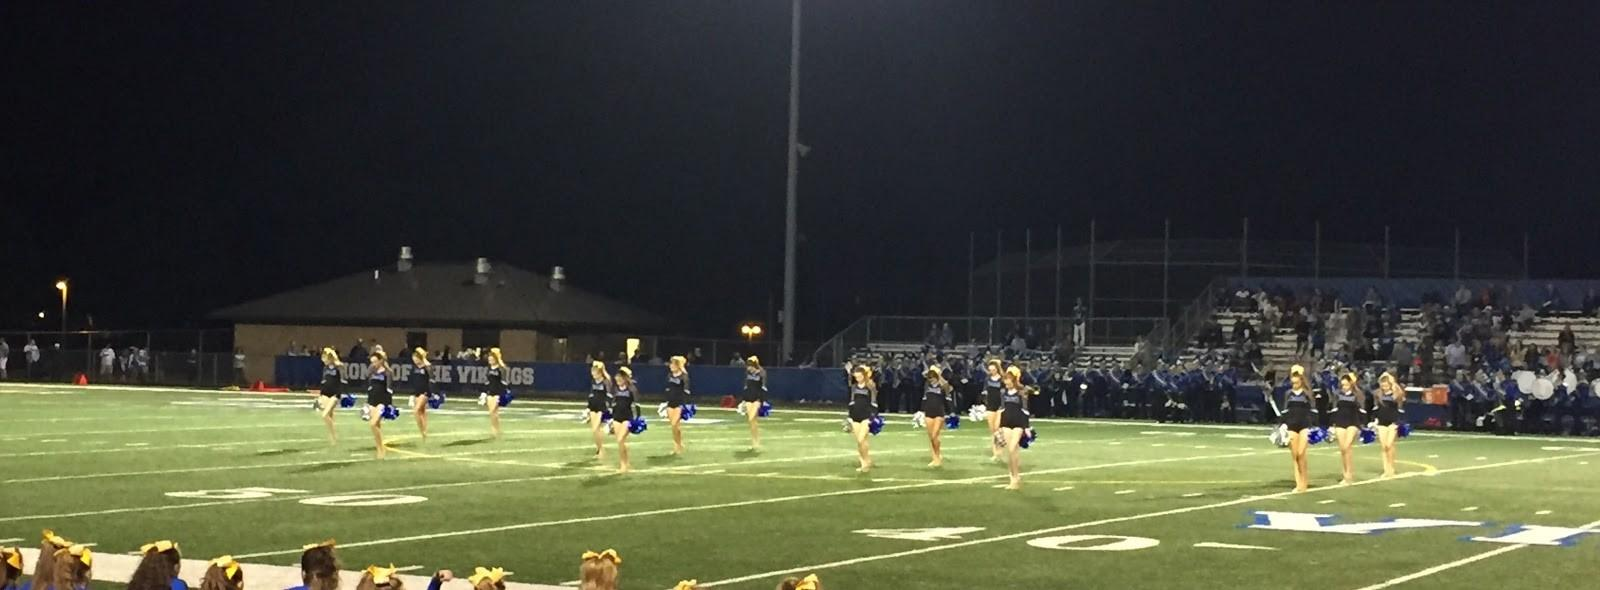 Varsity Dance Team performing during homecoming